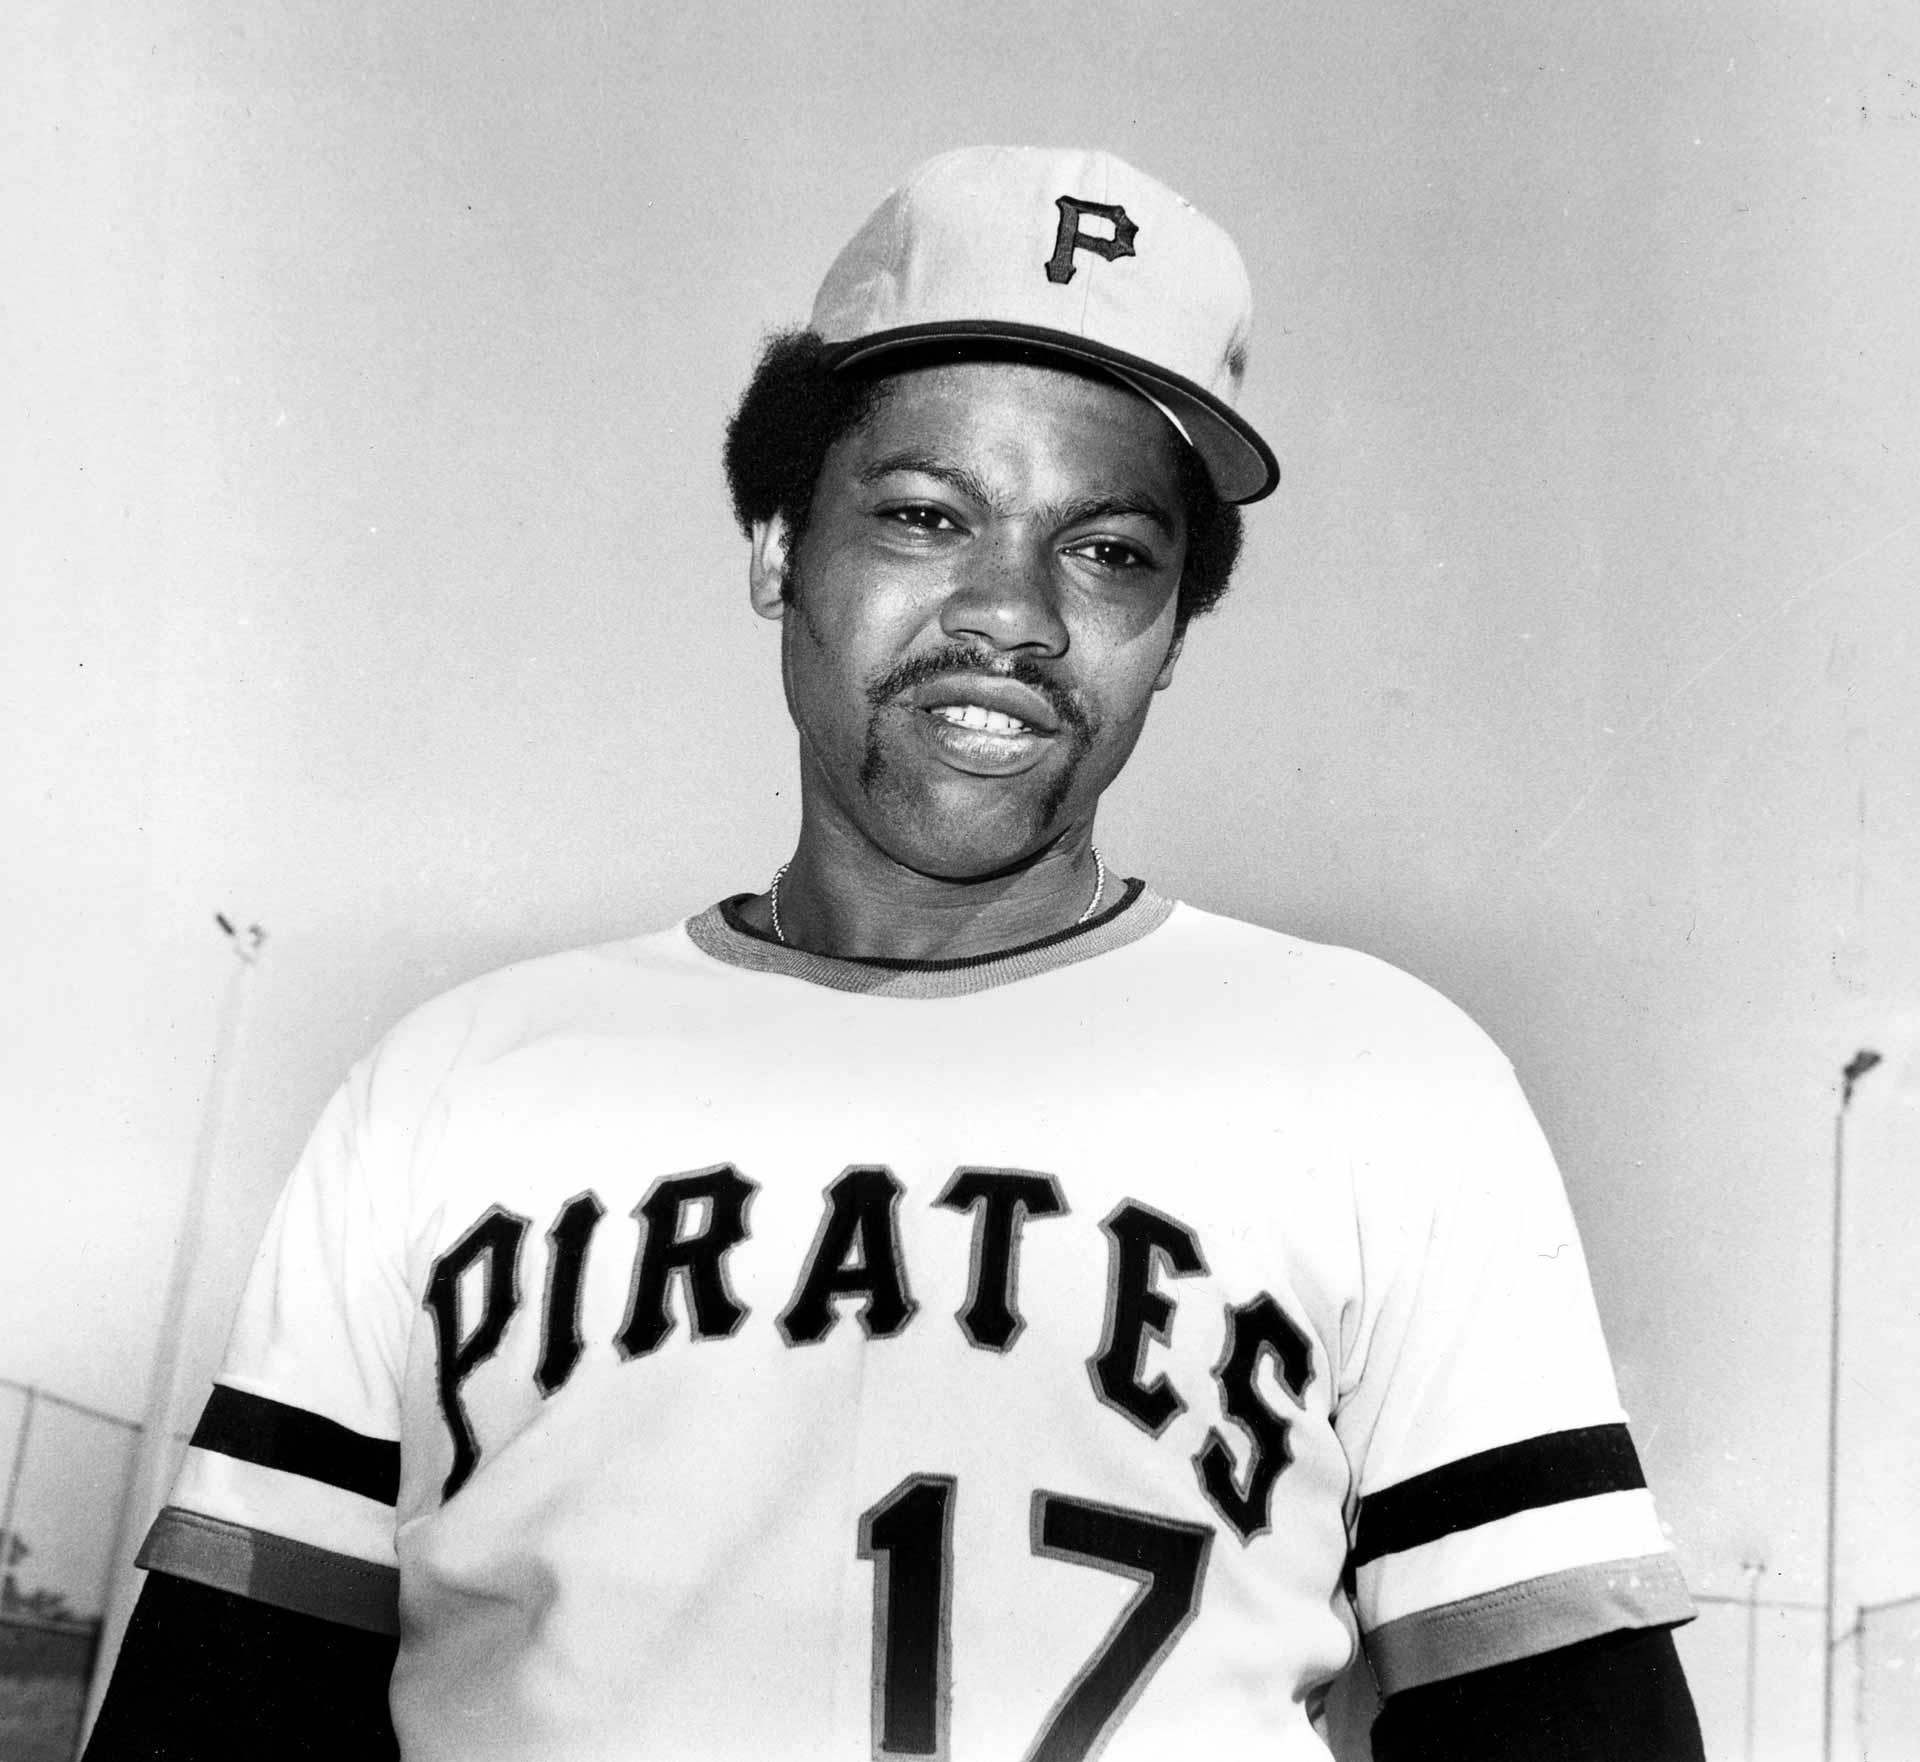 Badass Baseball Dock Ellis.jpg